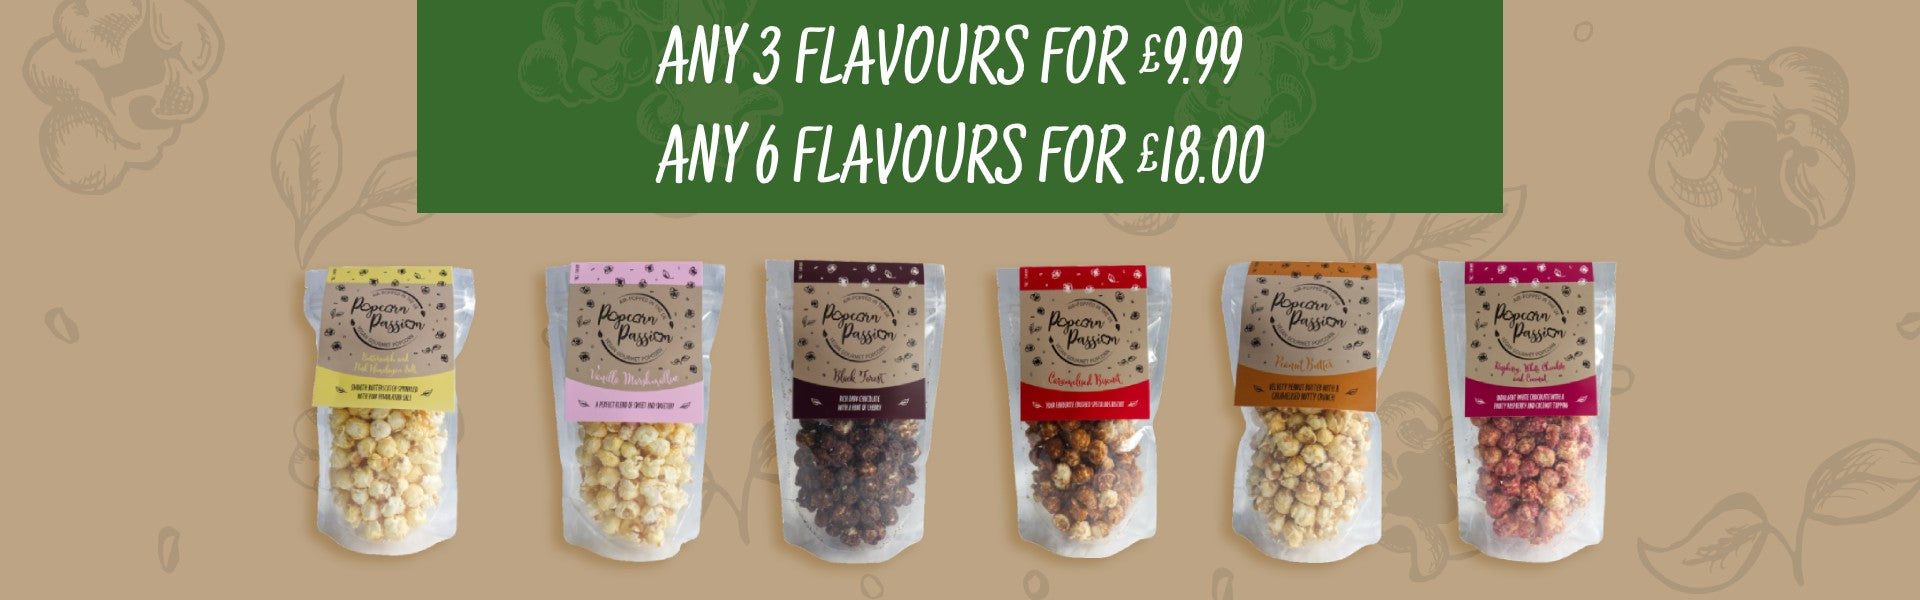 Popcorn passion mix and match banner showing all flavours of popcorn